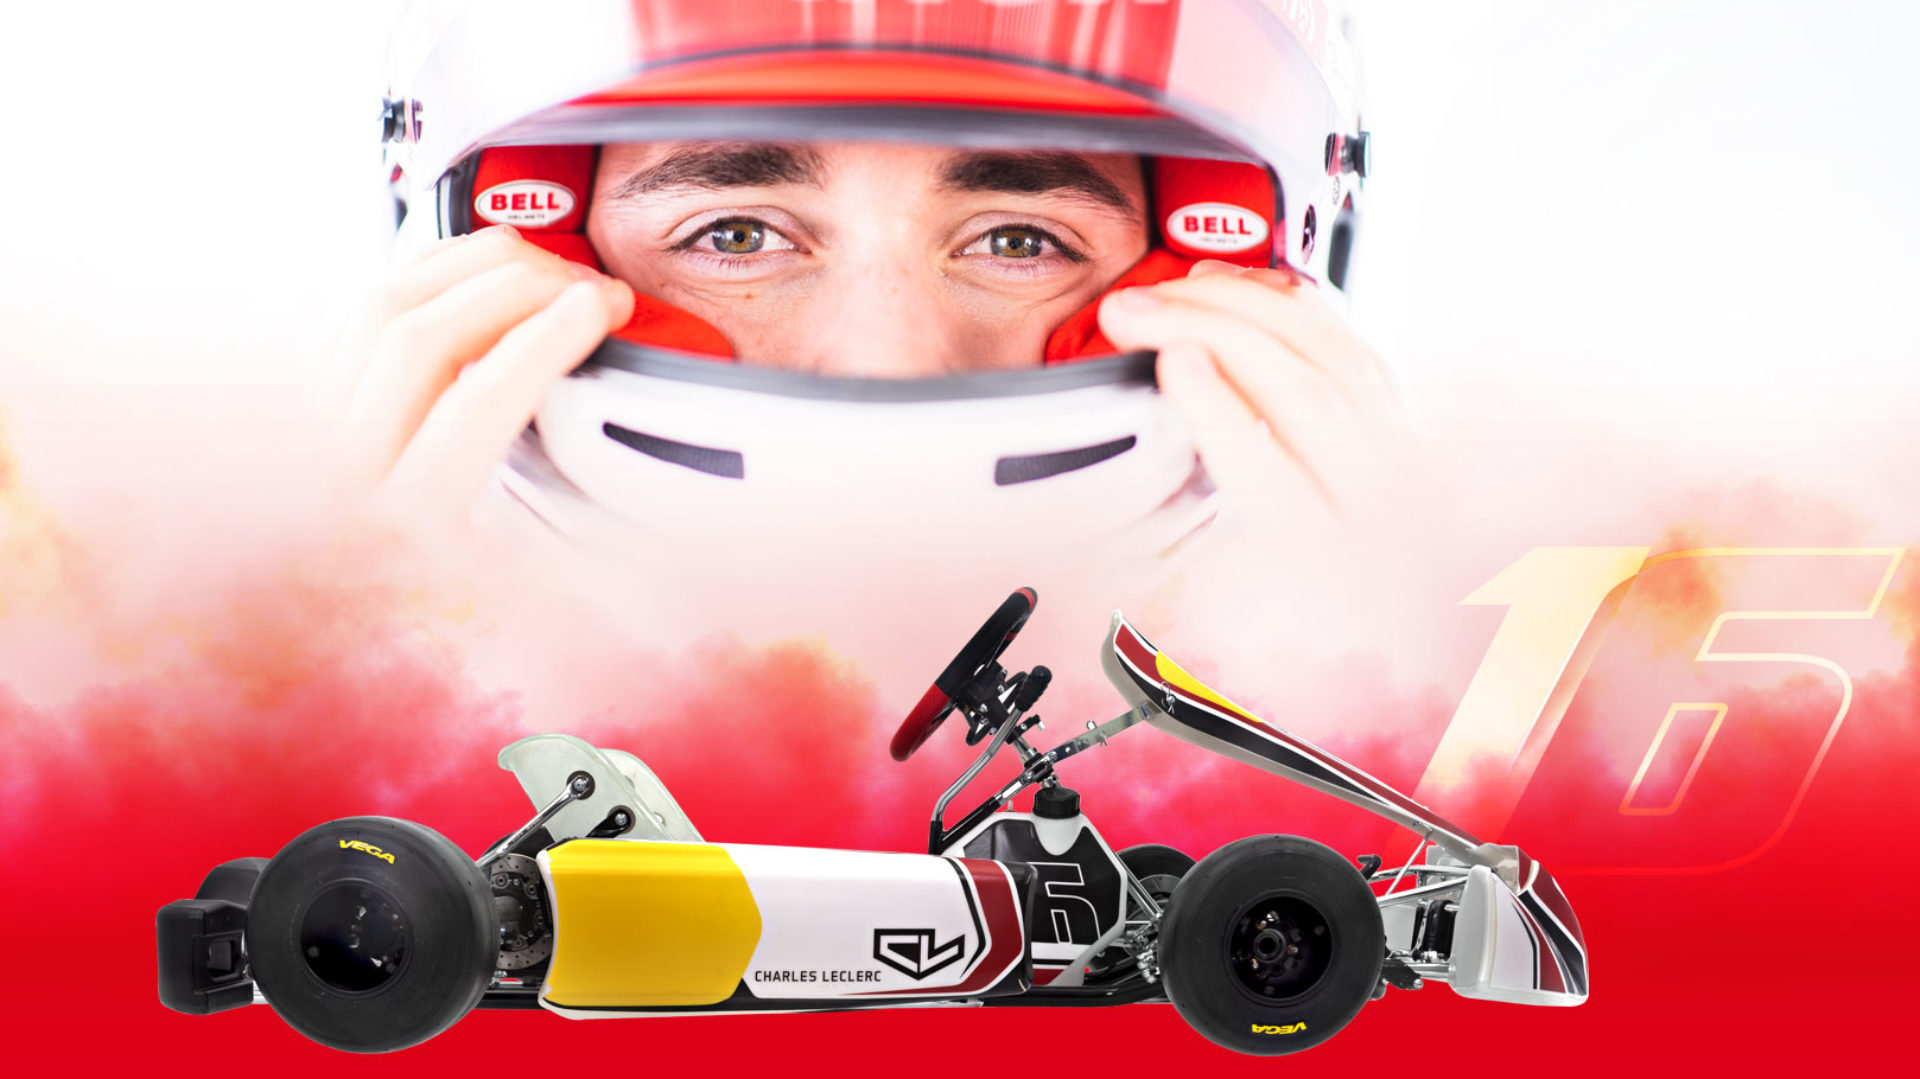 CL Charles Leclerc